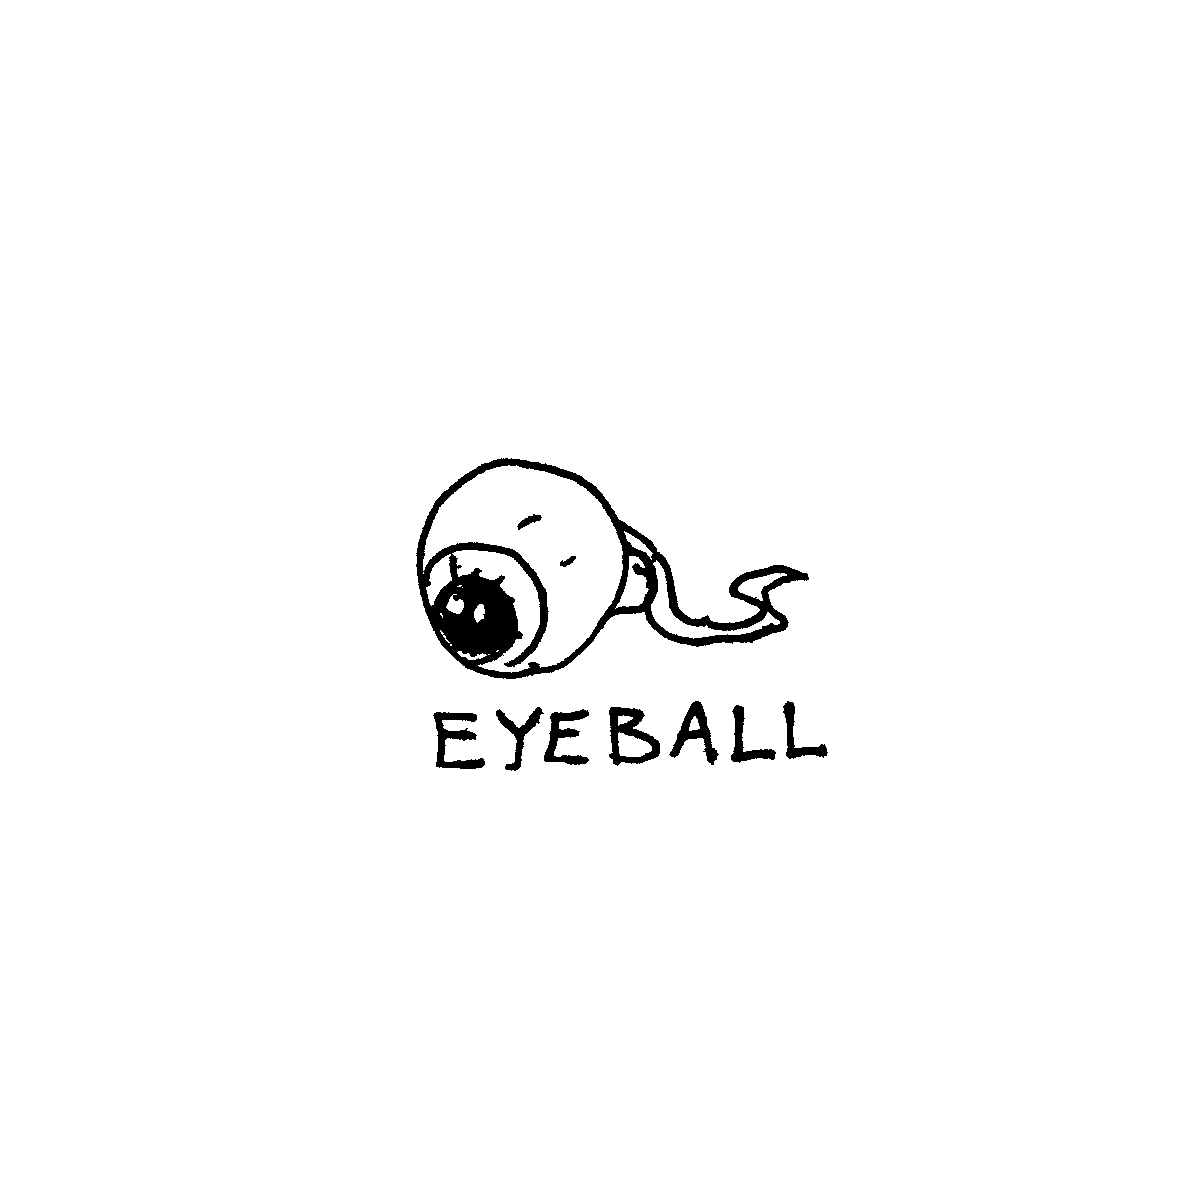 detached eyeball cartoon doodle